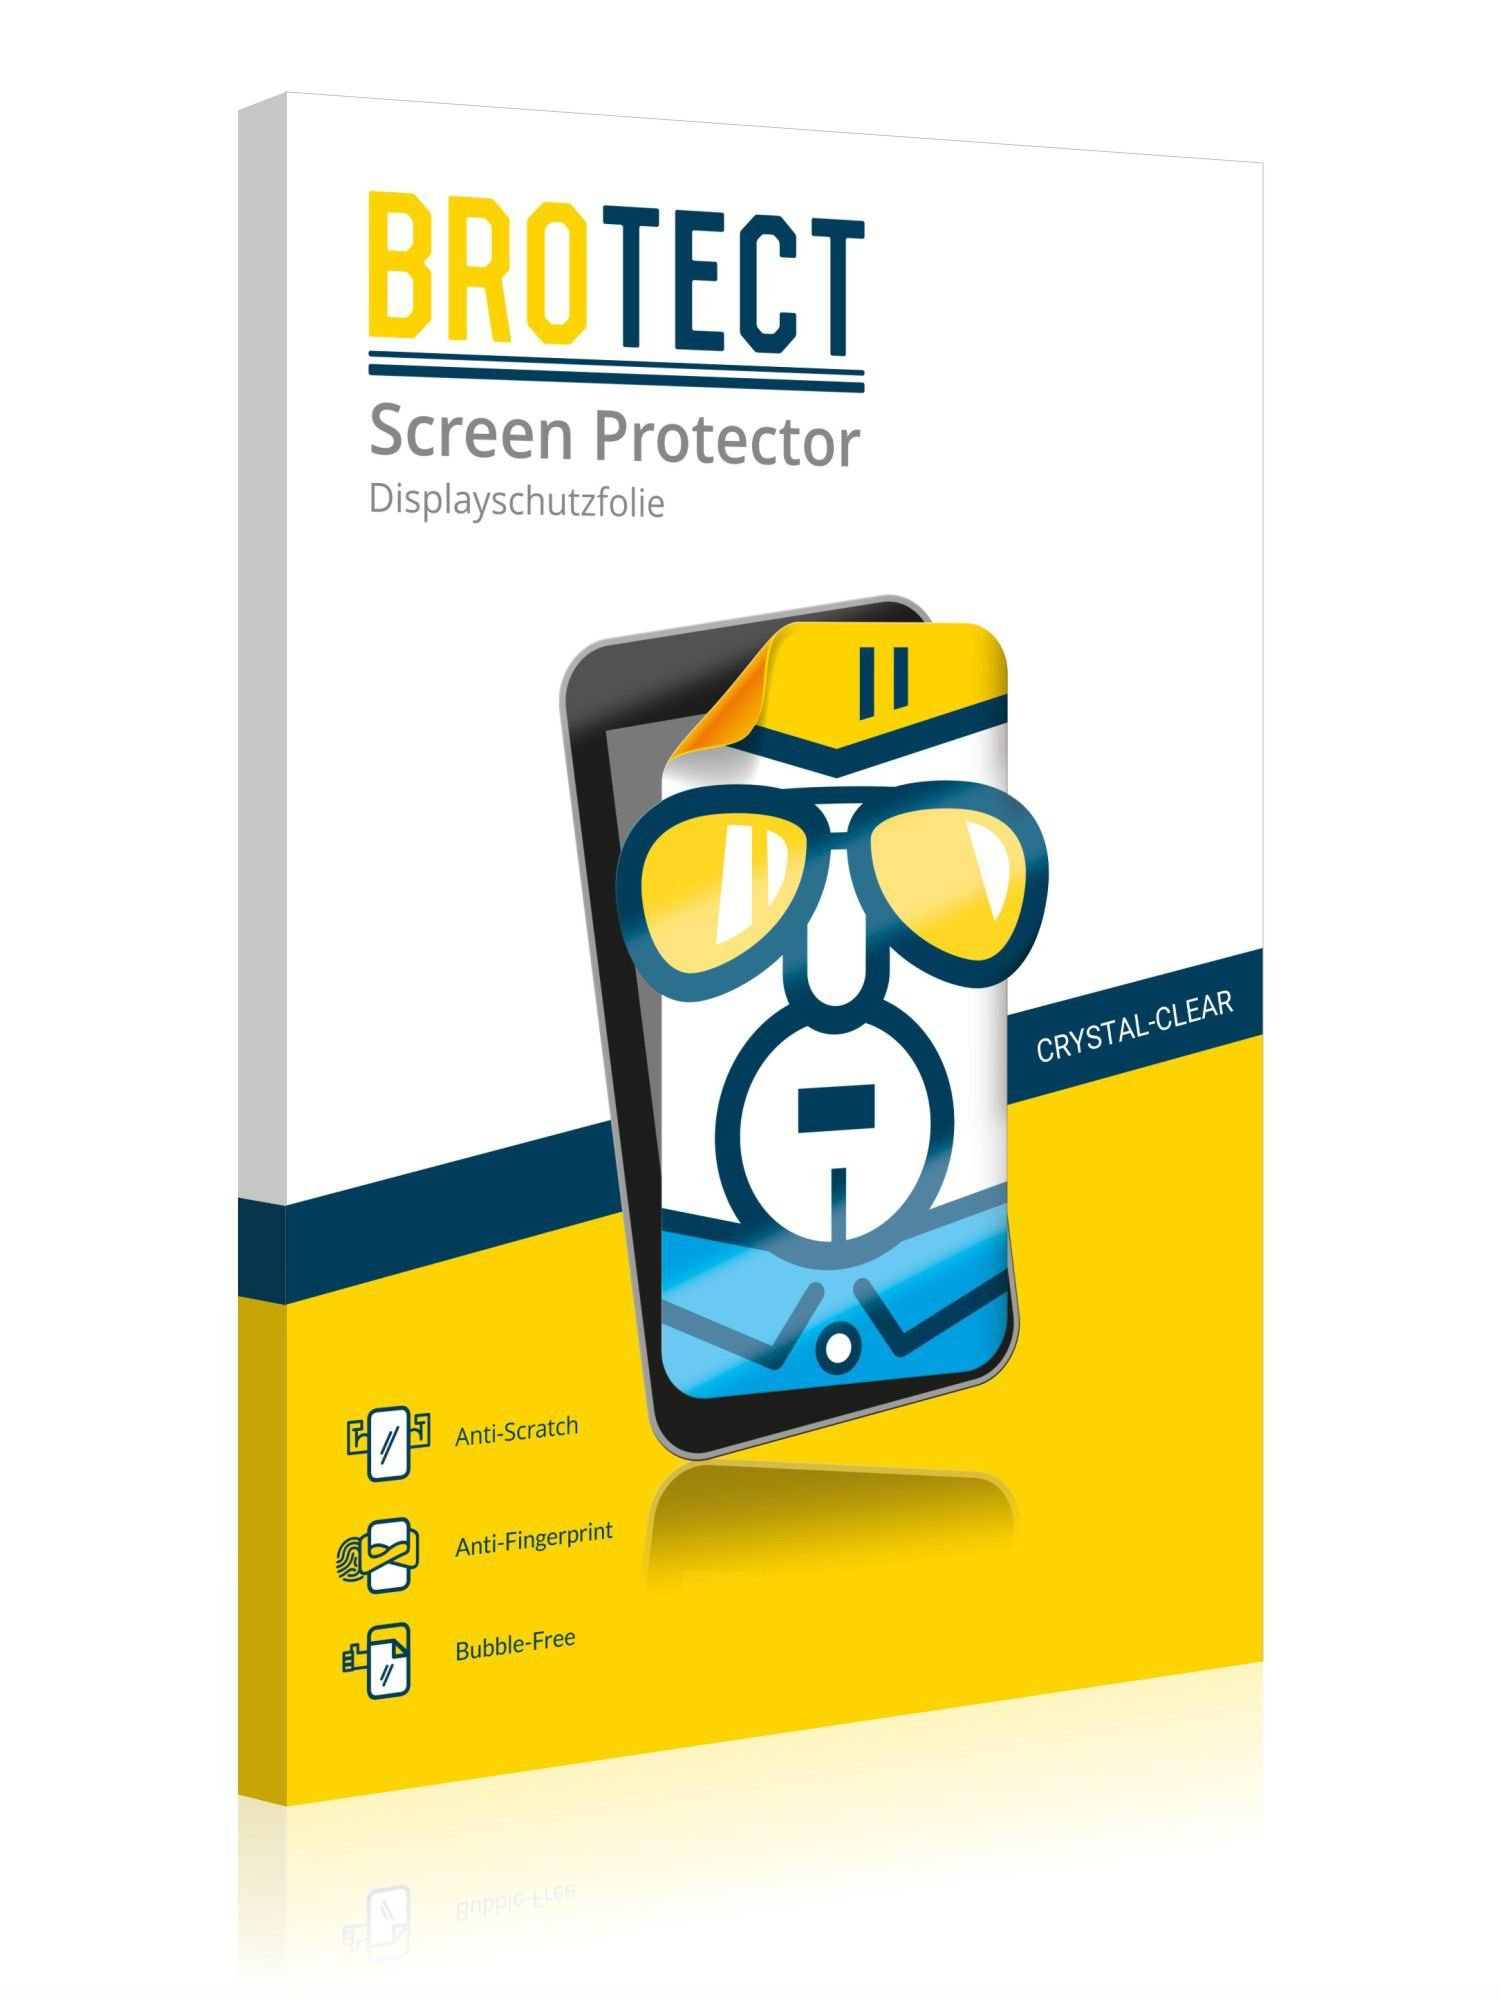 2X BROTECT HD-Clear Screen Protector for Posiflex MT-4008W, Crystal-Clear, Hard-Coated, Dirt-Repellent by Brotect